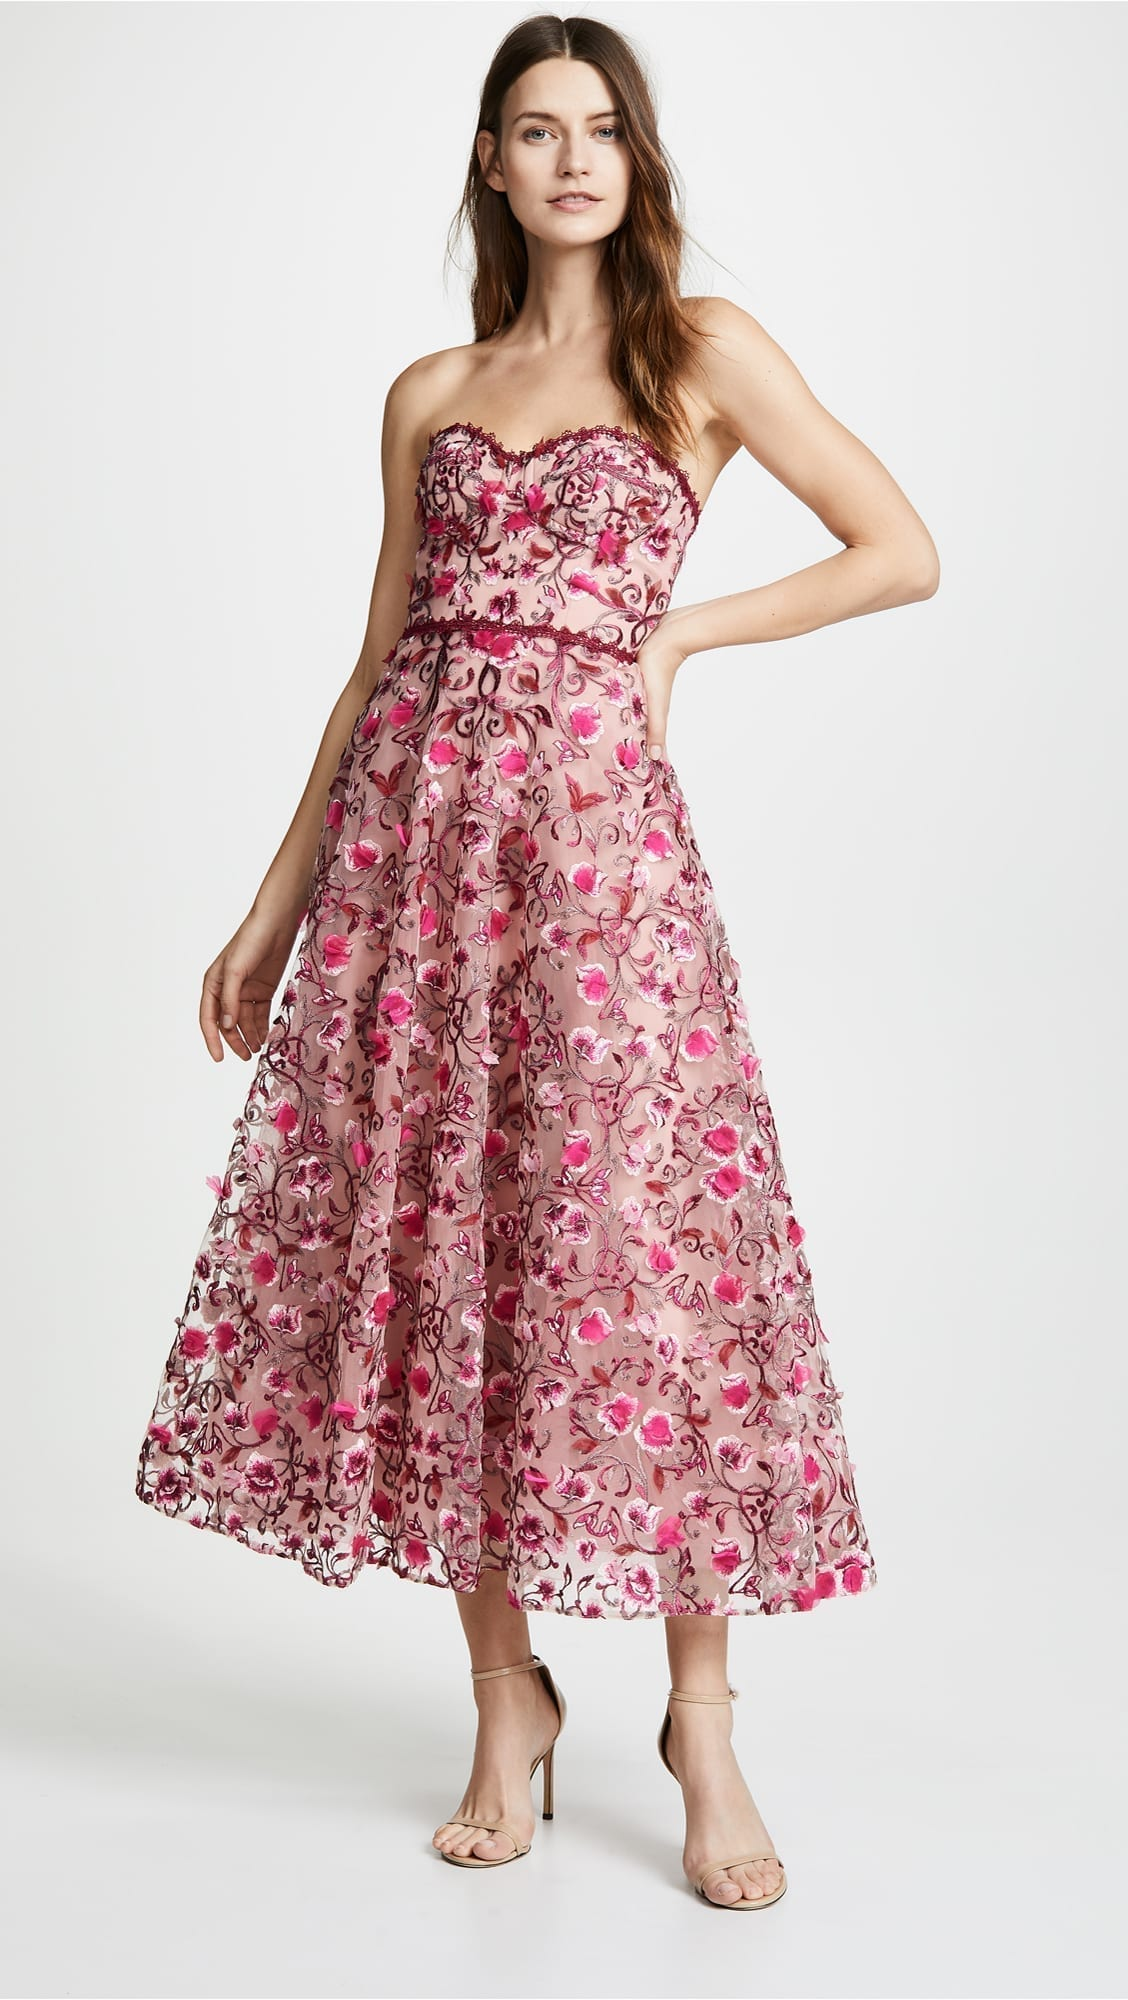 3e92c293cf4 MARCHESA NOTTE Floral Embroidered Tea Length Floral Gown